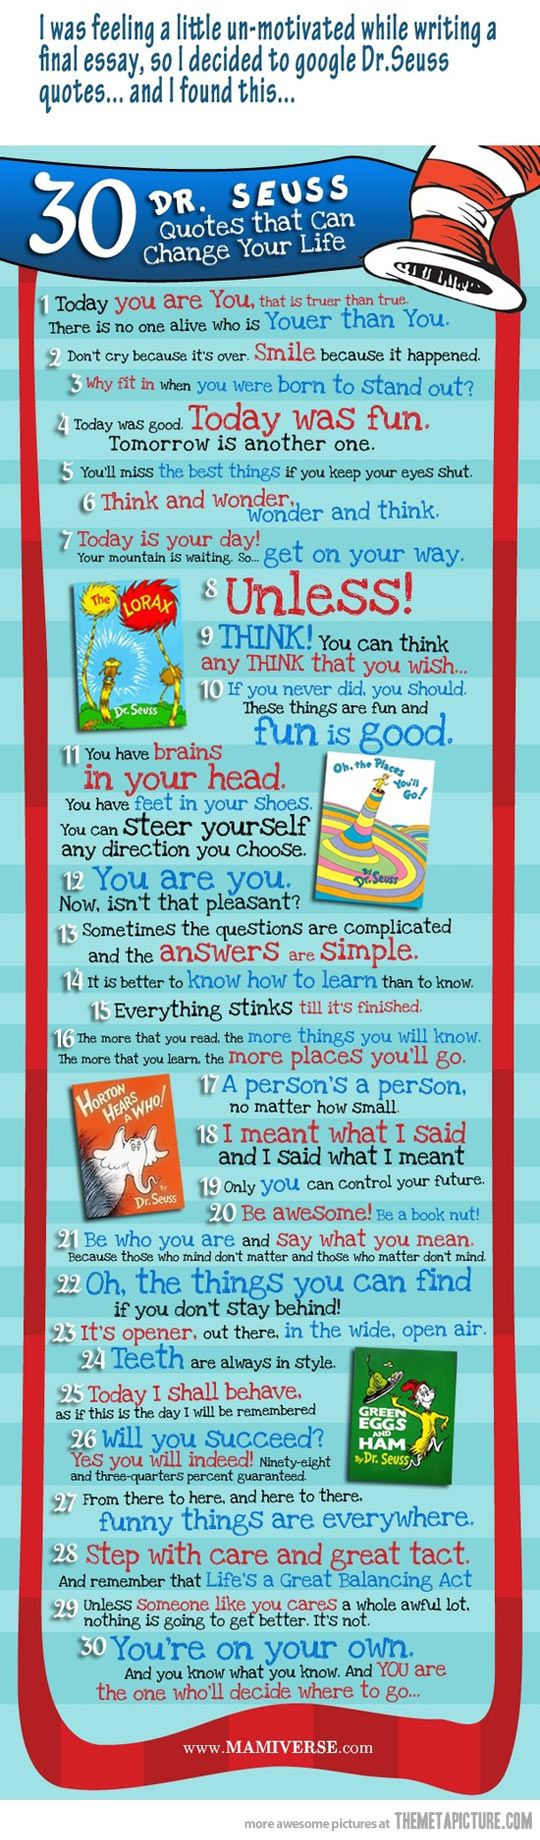 30 Dr Suess Quotes / via Mamiverse. love dr seuss quotes!